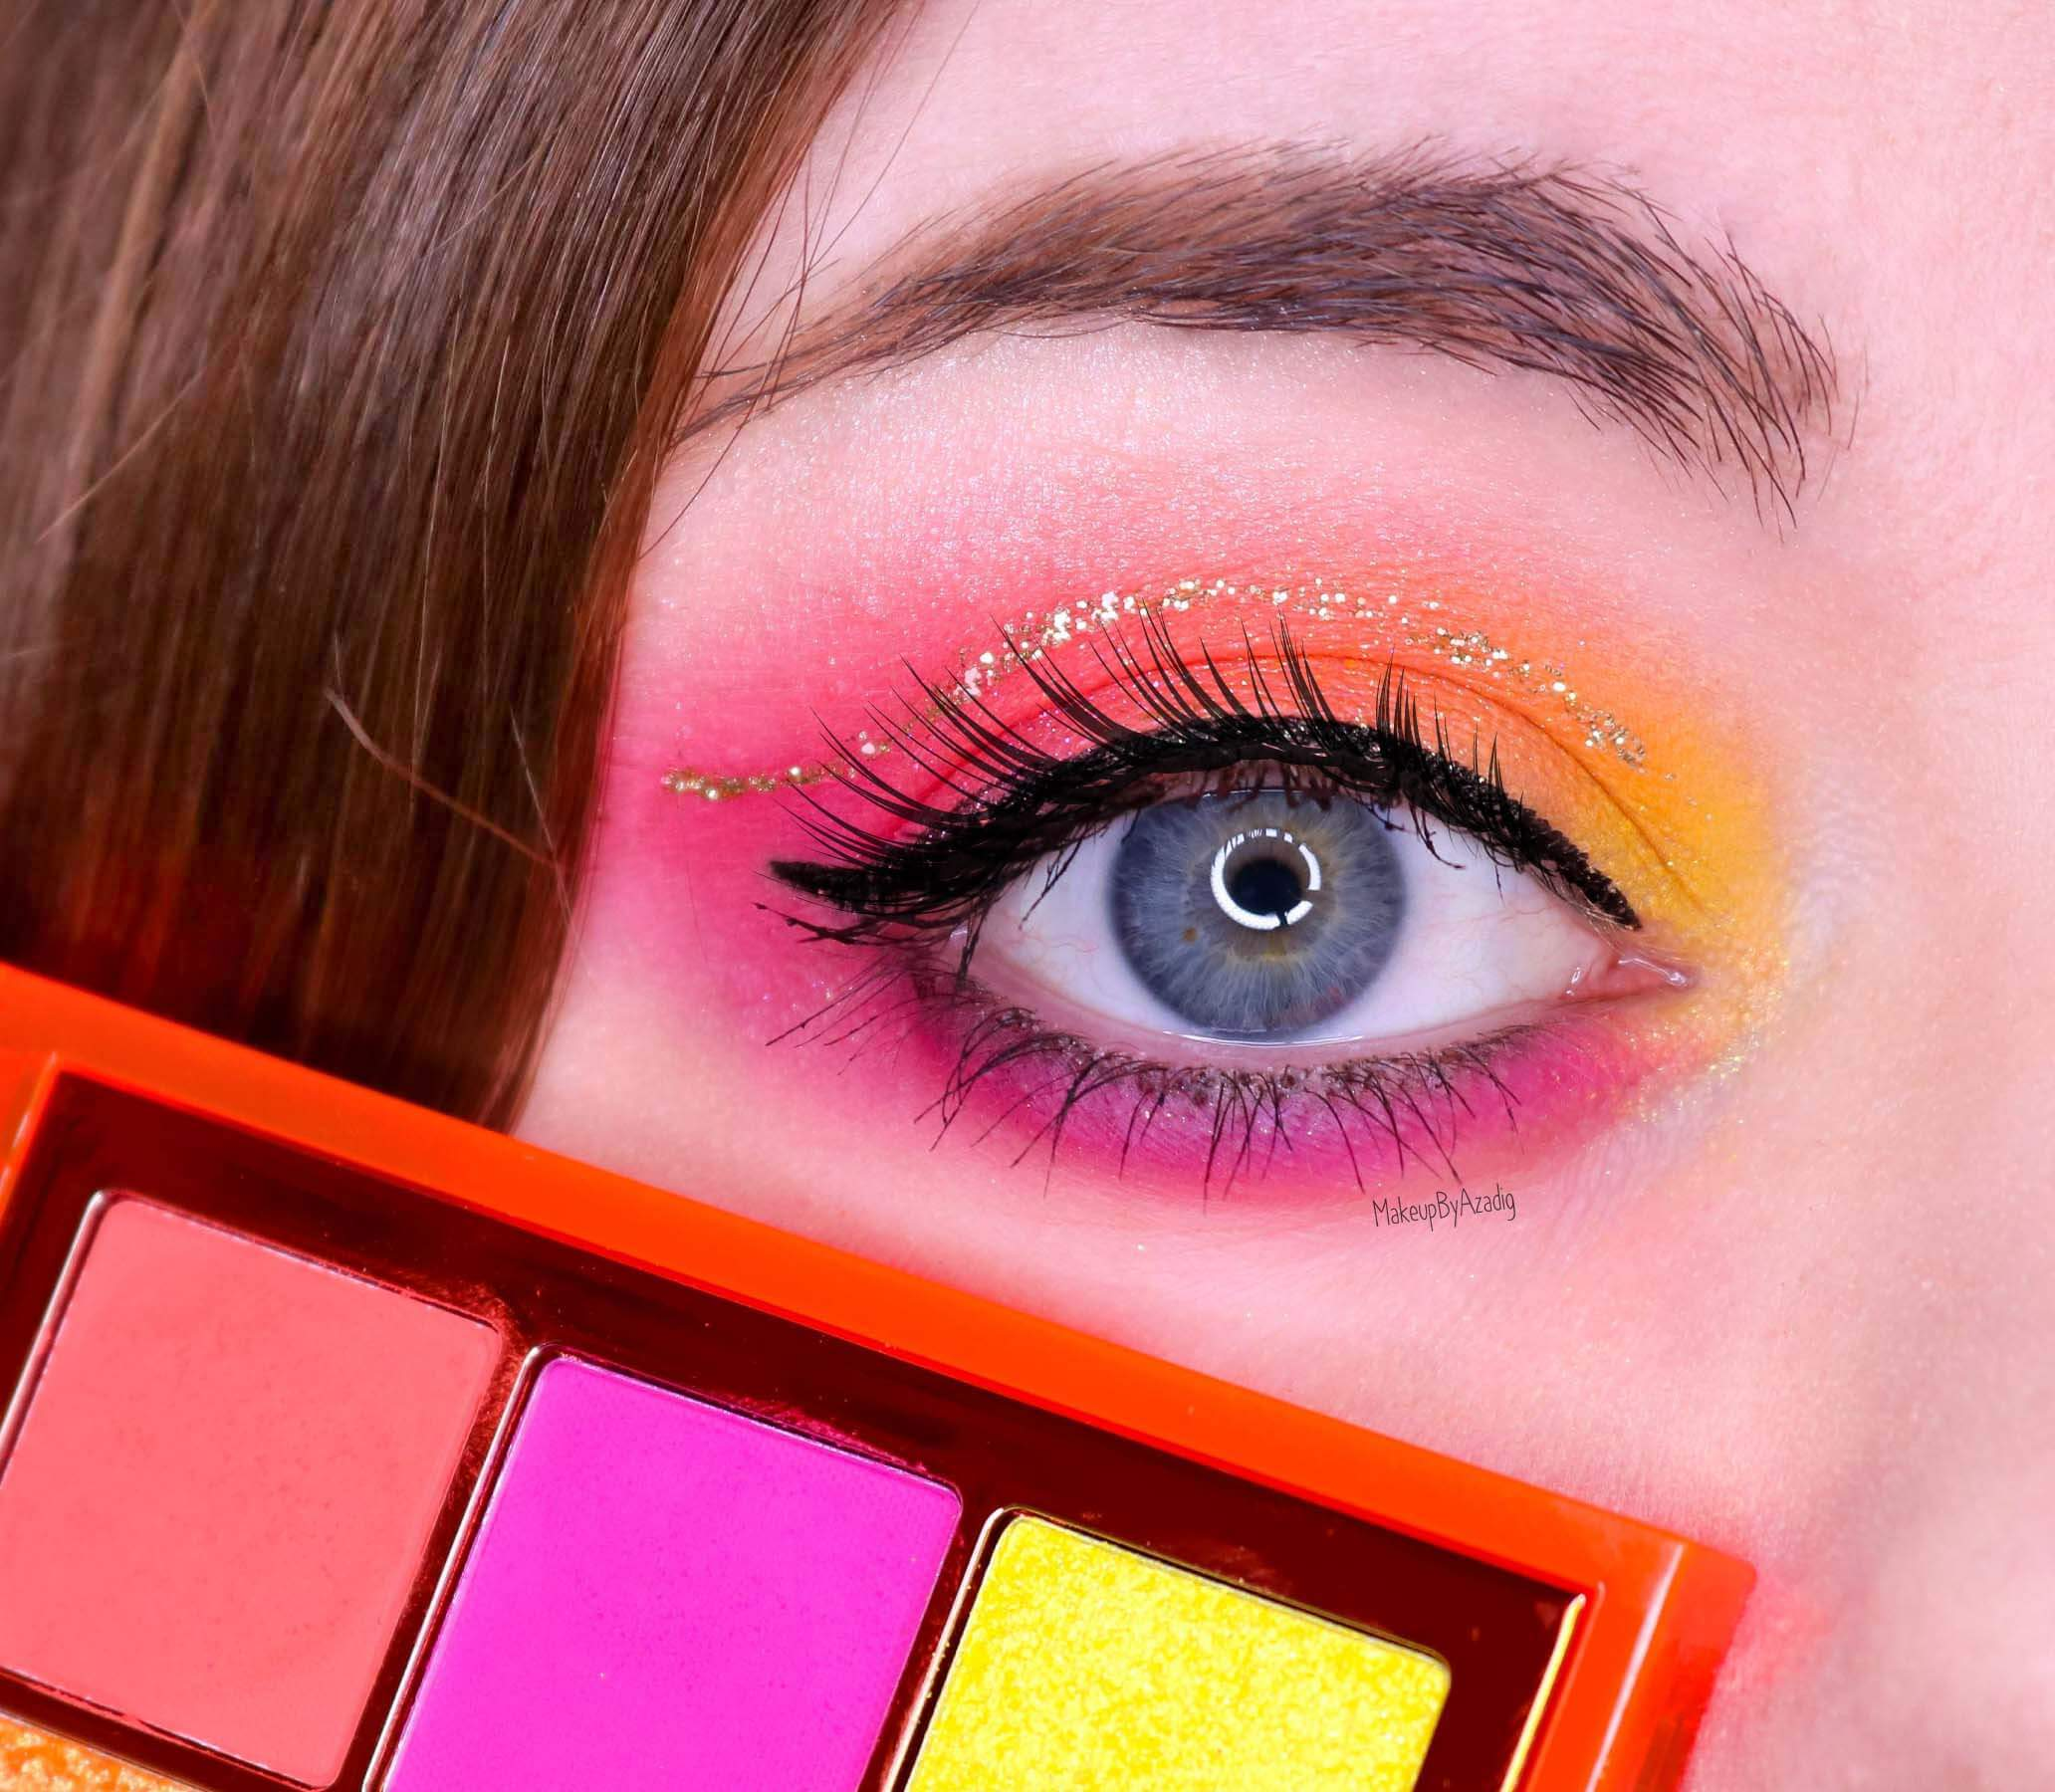 revue-review-palette-neon-obsession-huda-beauty-orange-pink-green-neon-palette-fard-paupieres-fluo-swatch-avis-prix-makeupbyazadig-makeup-summer